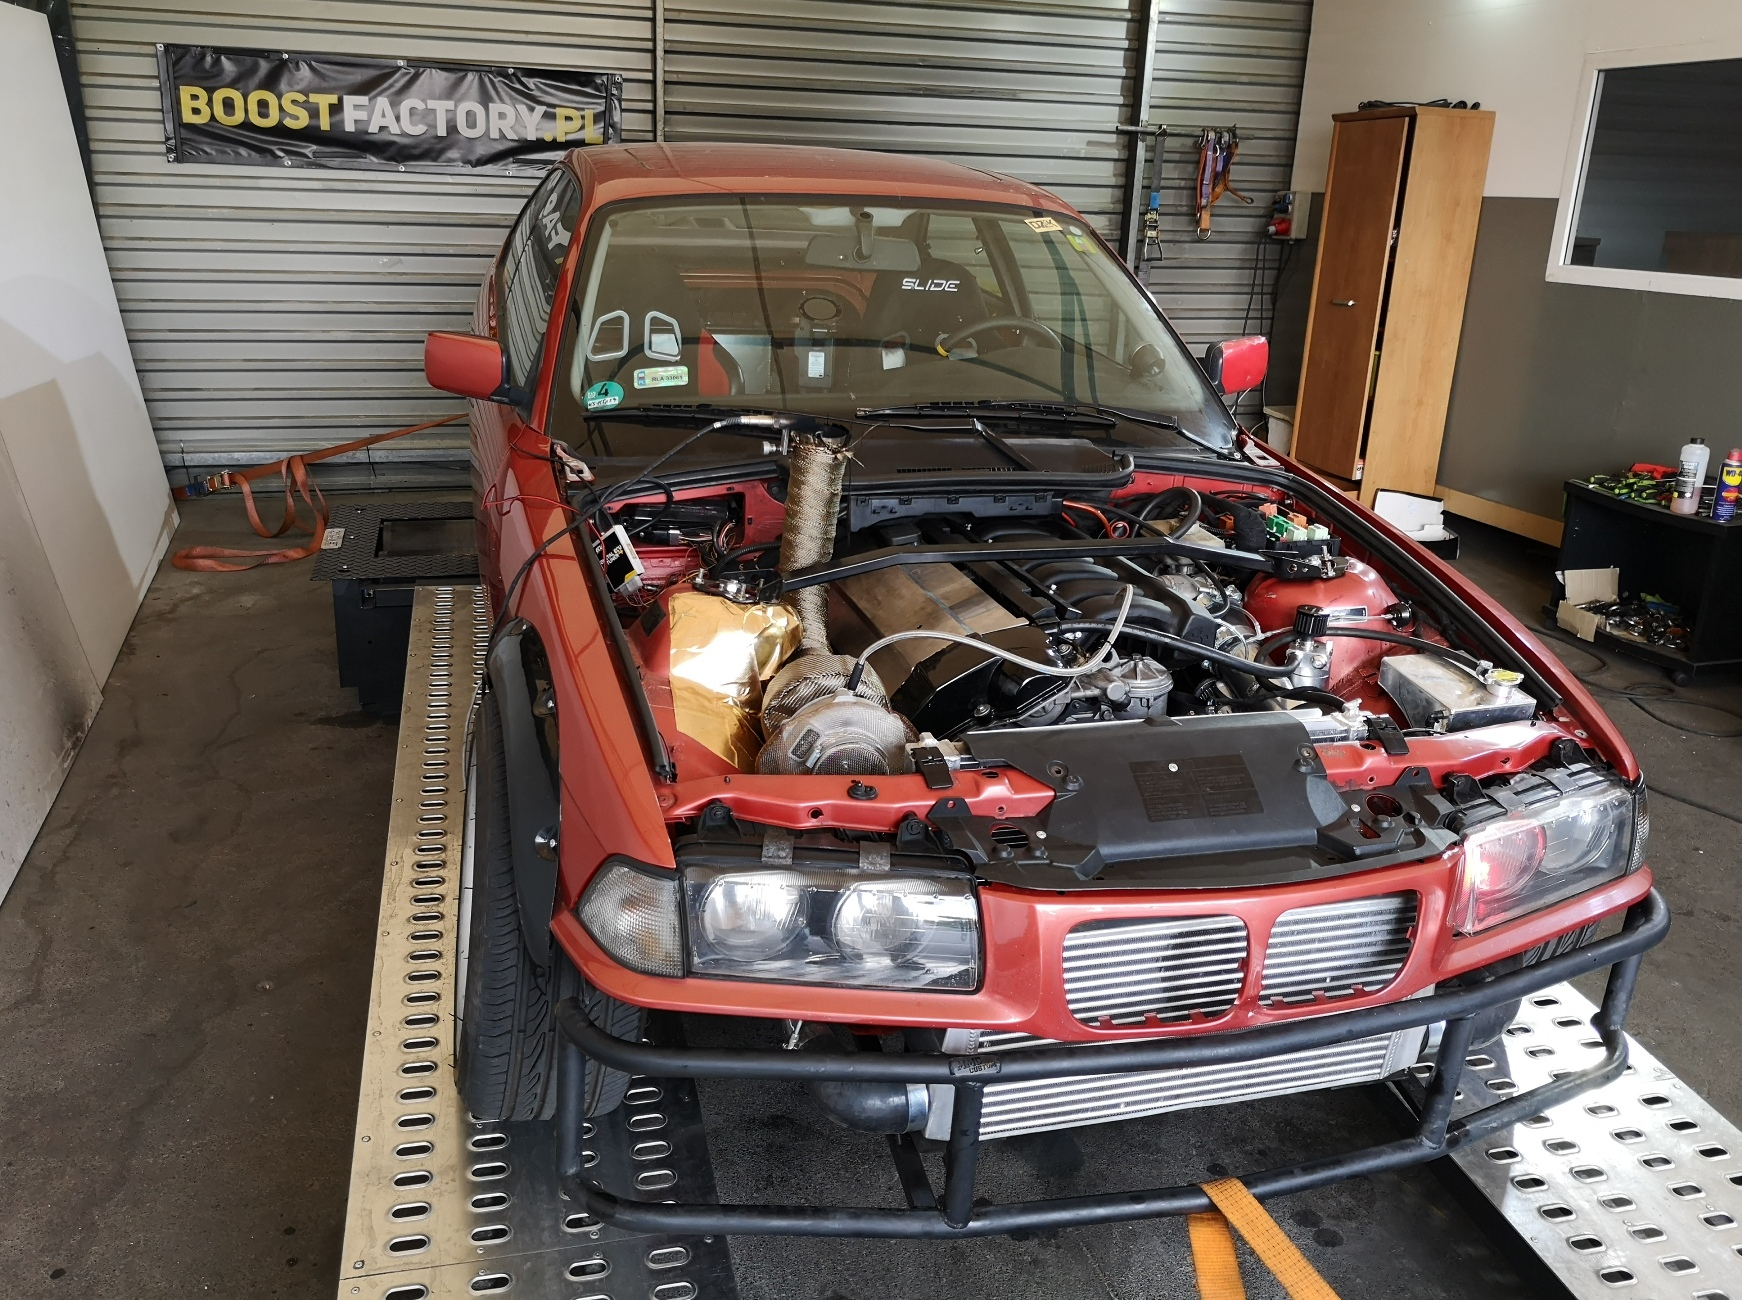 BMW E36 M50B29 Turbo 410KM 542Nm